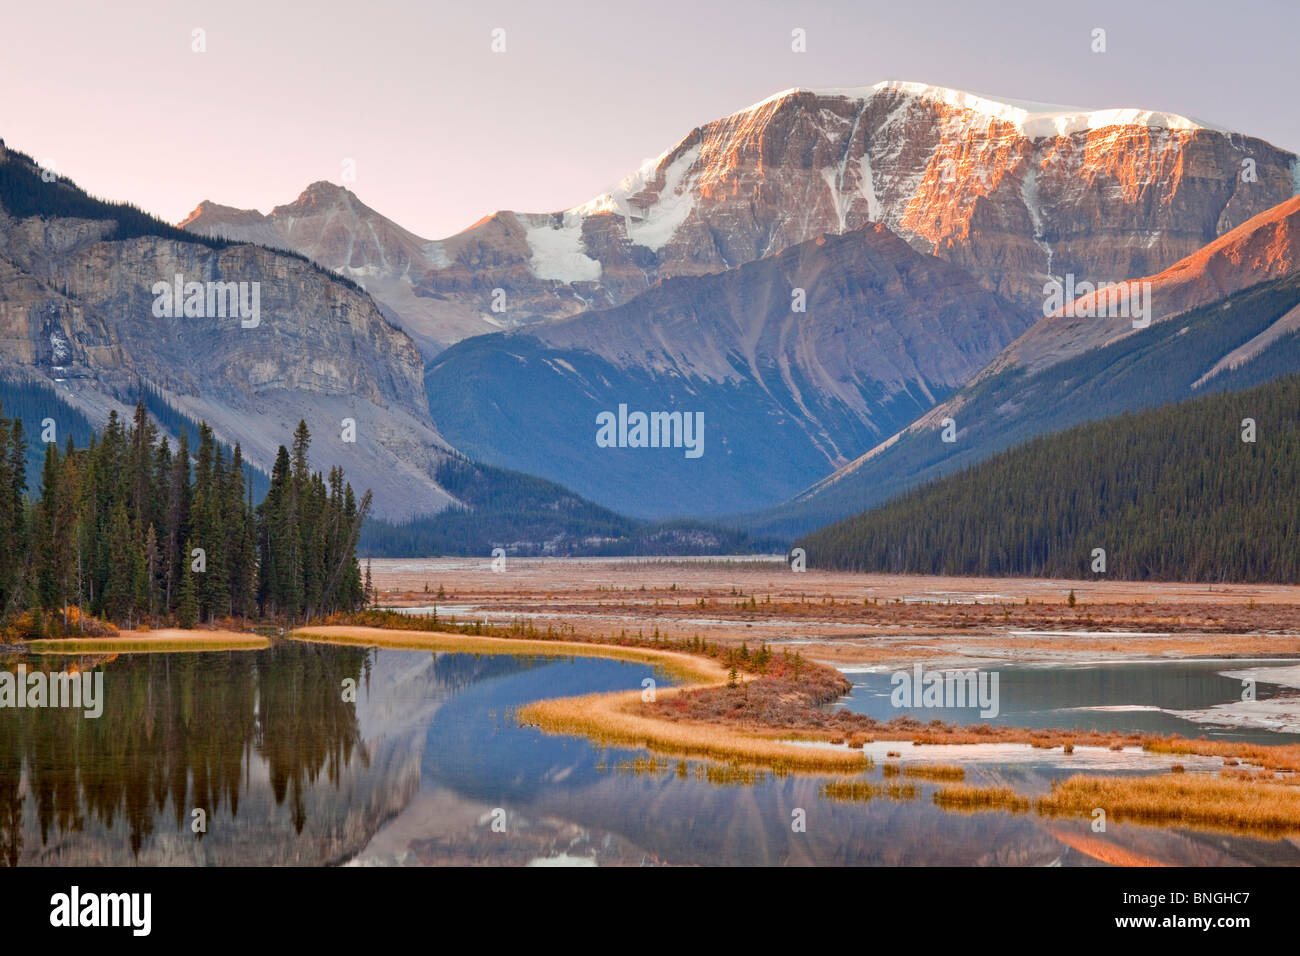 Mount Kitchener Stock Photos & Mount Kitchener Stock Images - Alamy